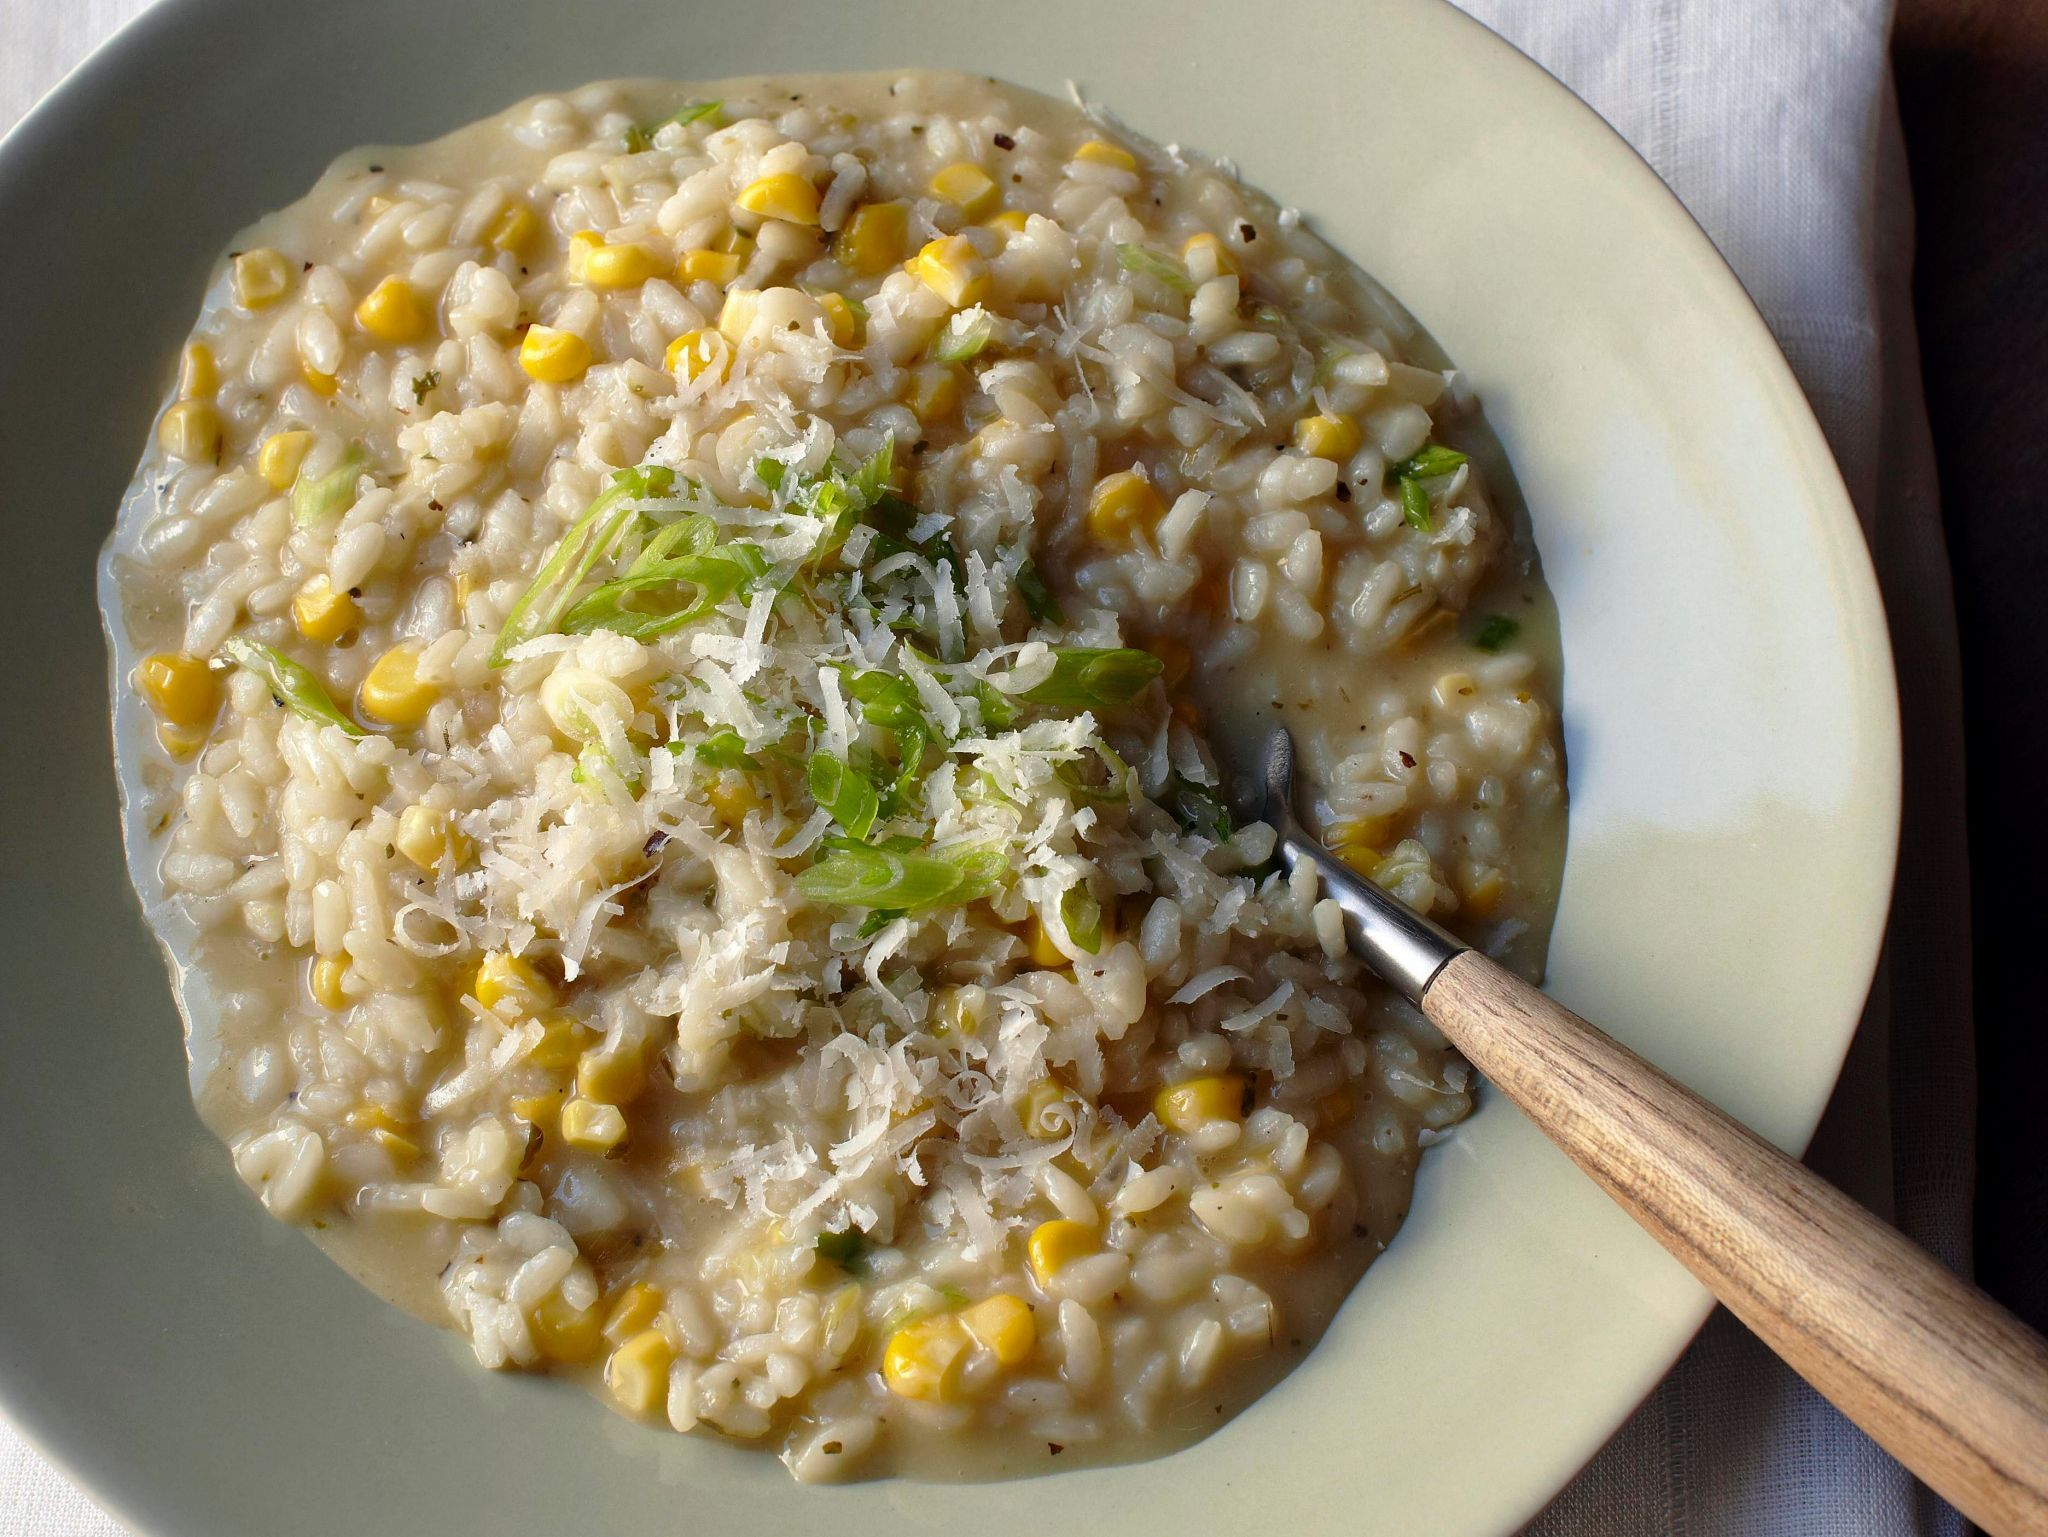 Watch Roast Chicken Breasts with Sweetcorn Risotto and Caramelised Shallots Recipe video